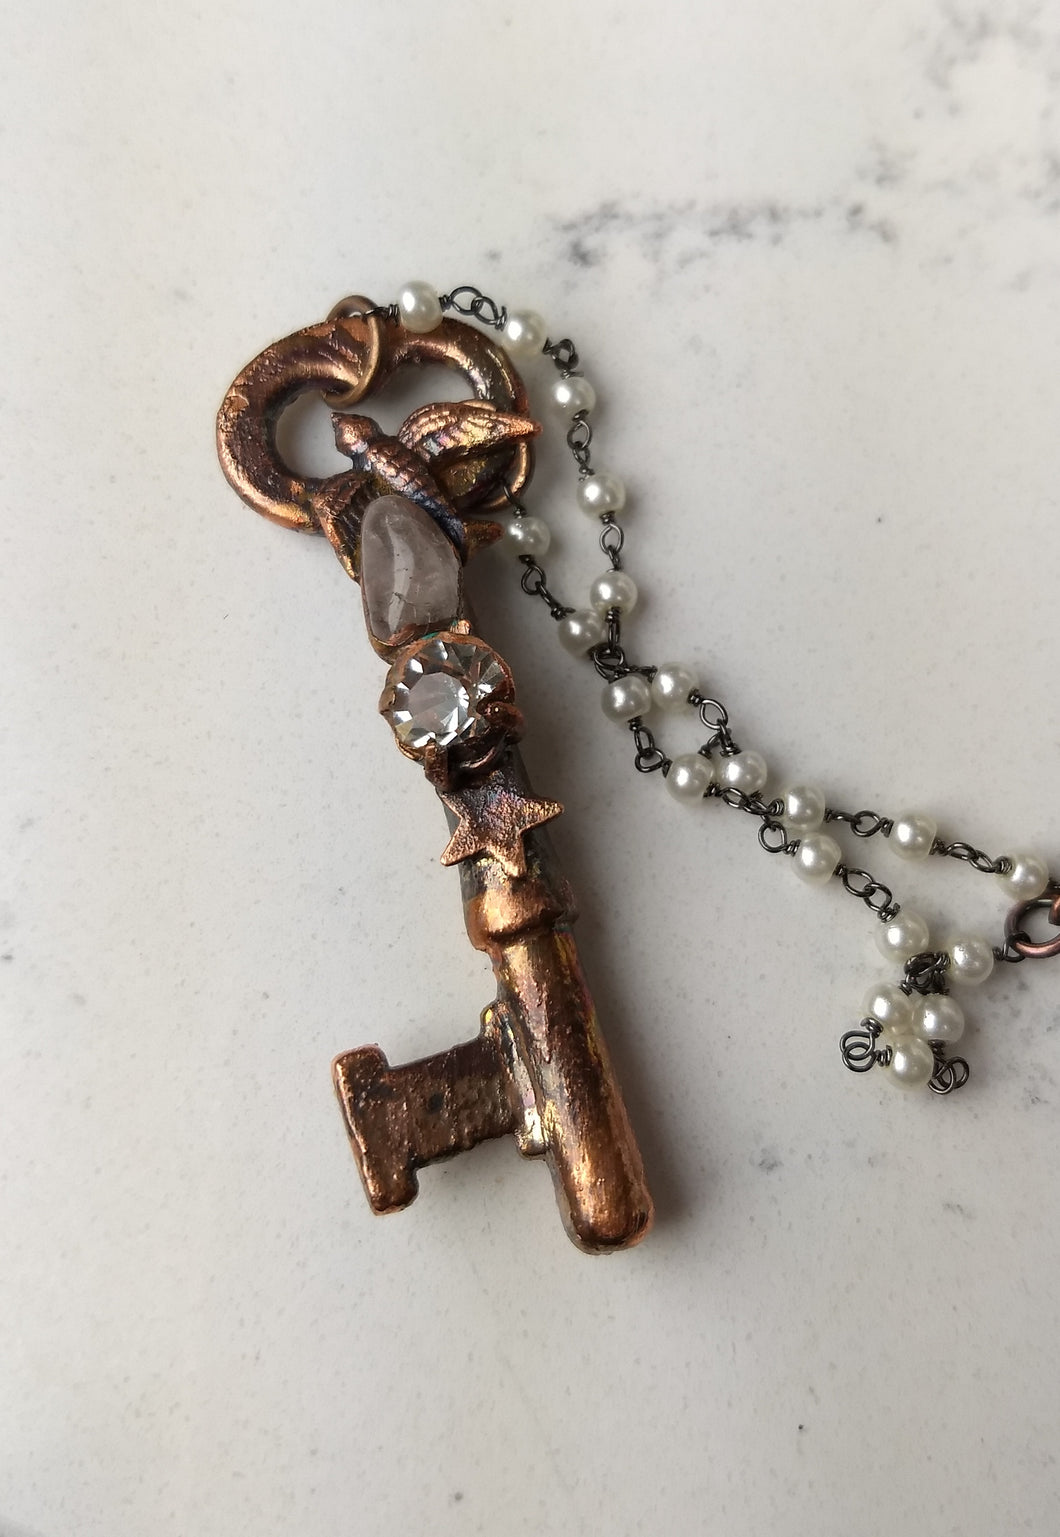 Vintage skeleton key with swallow, rhinestone, and quartz - Copper electroformed necklace - Minxes' Trinkets